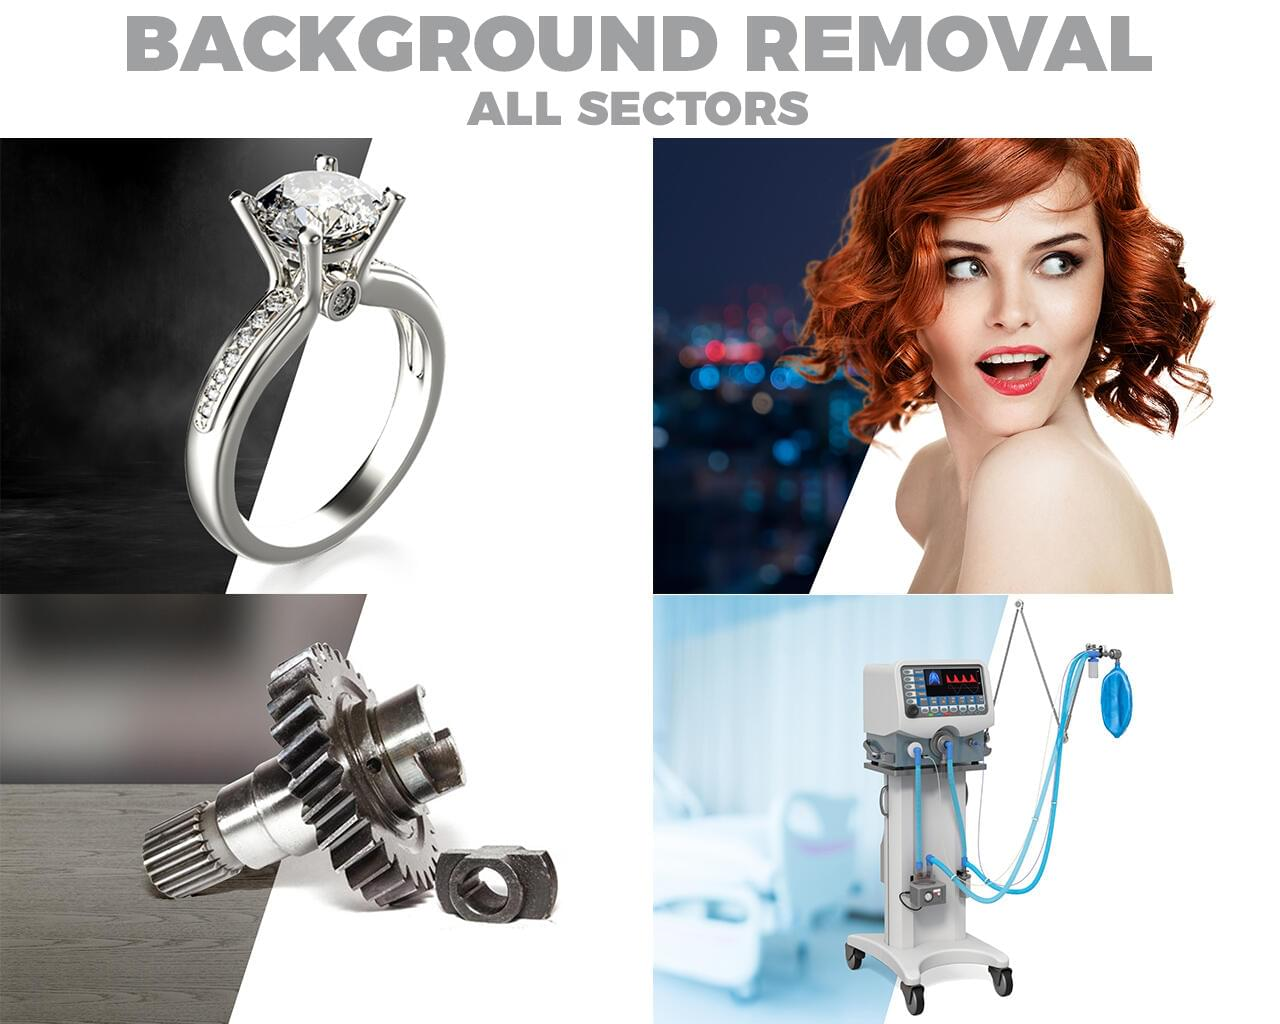 Background Removal - for 20 photos (1Photo 1Dollar) by hsynkyc - 118154